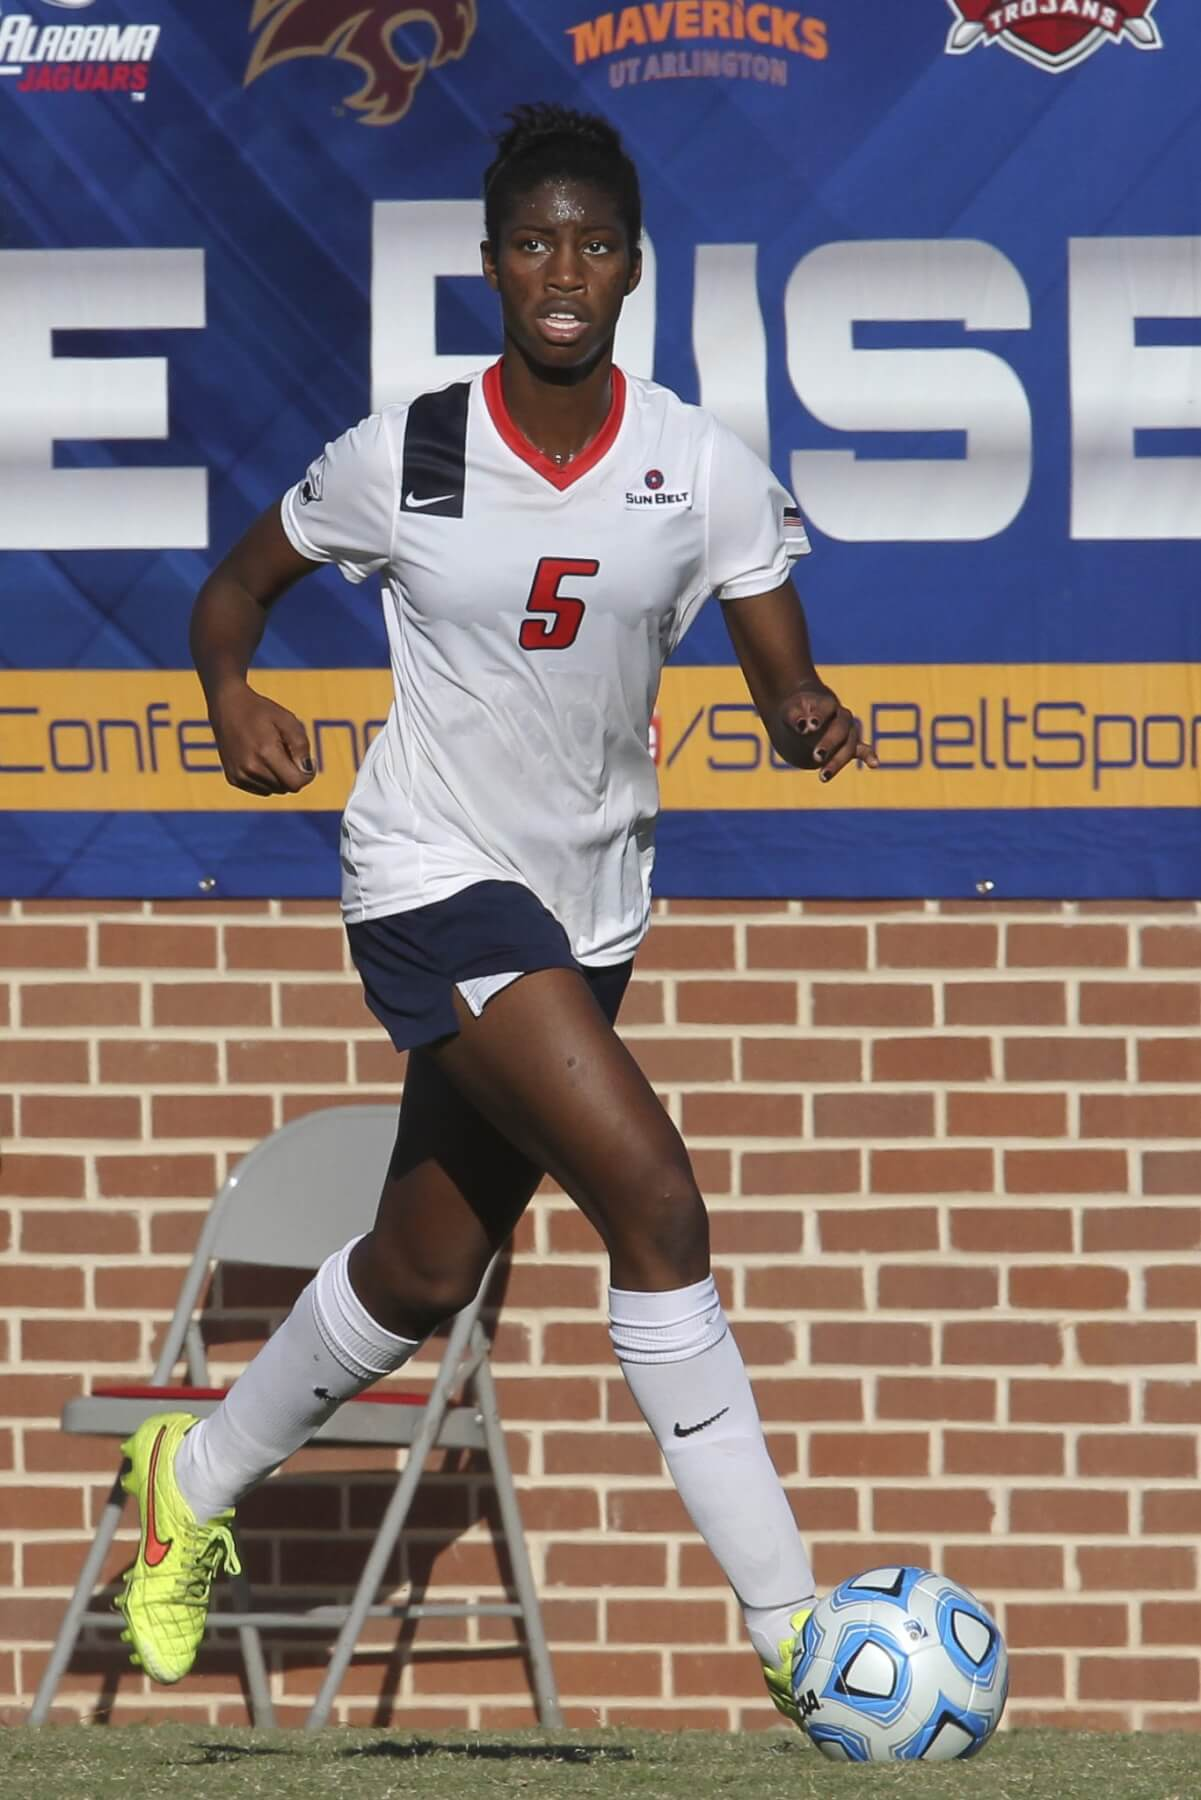 Local college teams favored to battle for postseason soccer honors